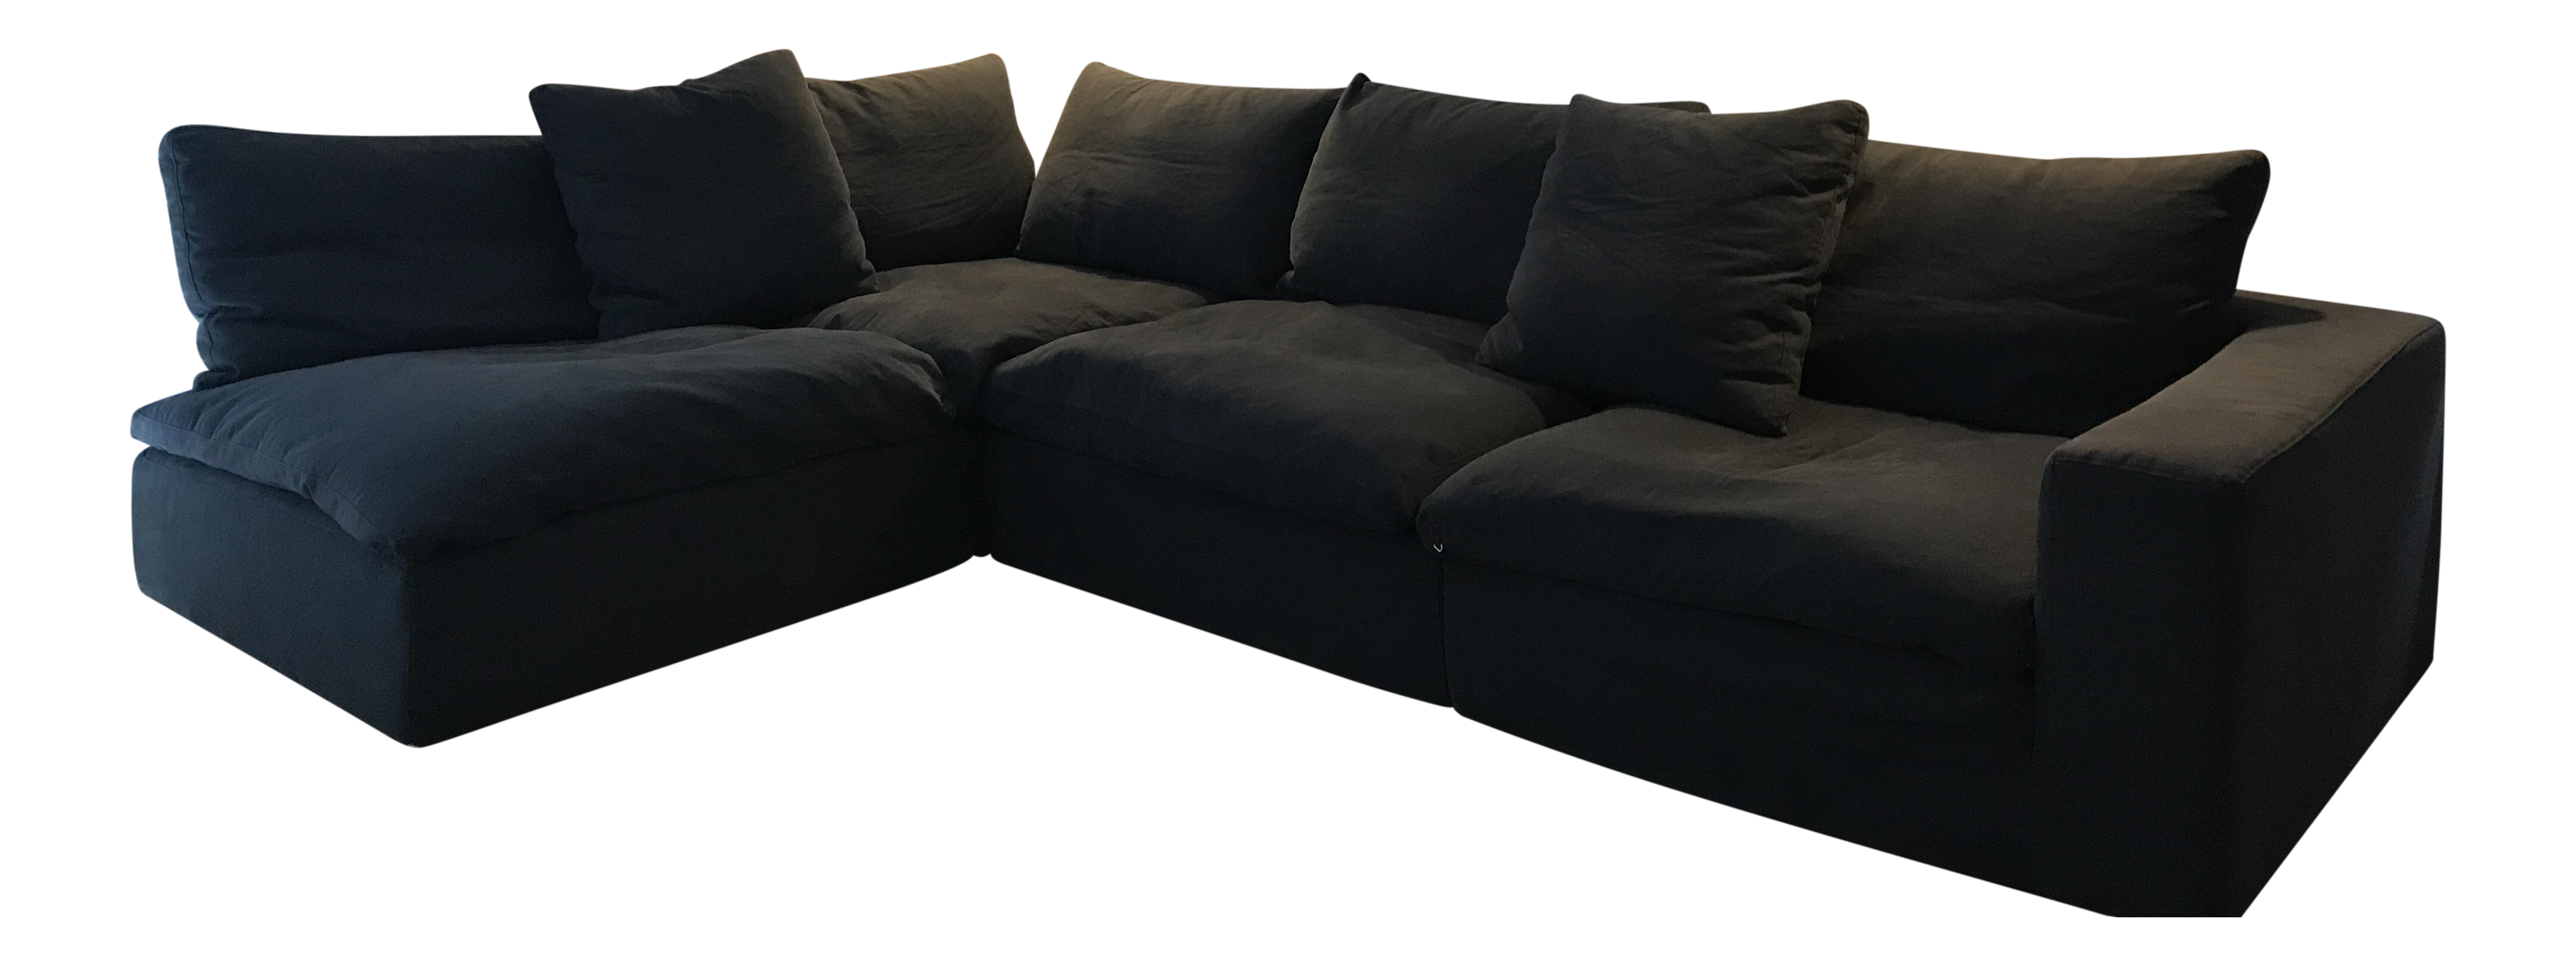 Restoration Hardware Cloud Modular Sectional